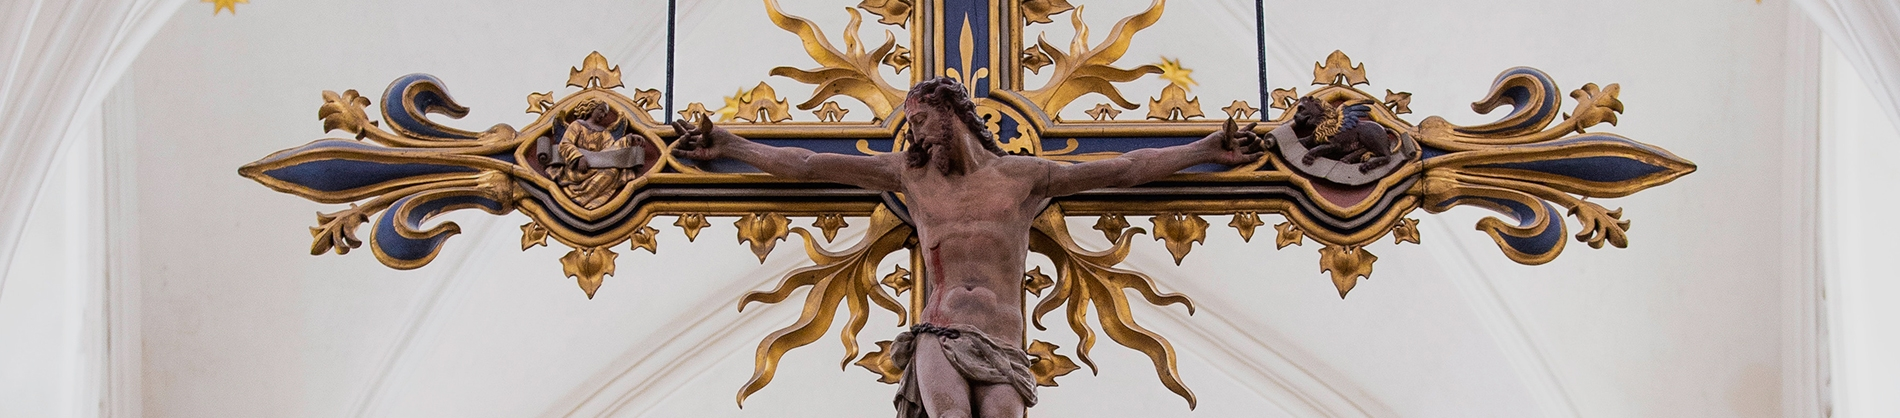 An elaborate statue of Jesus on the cross in a church